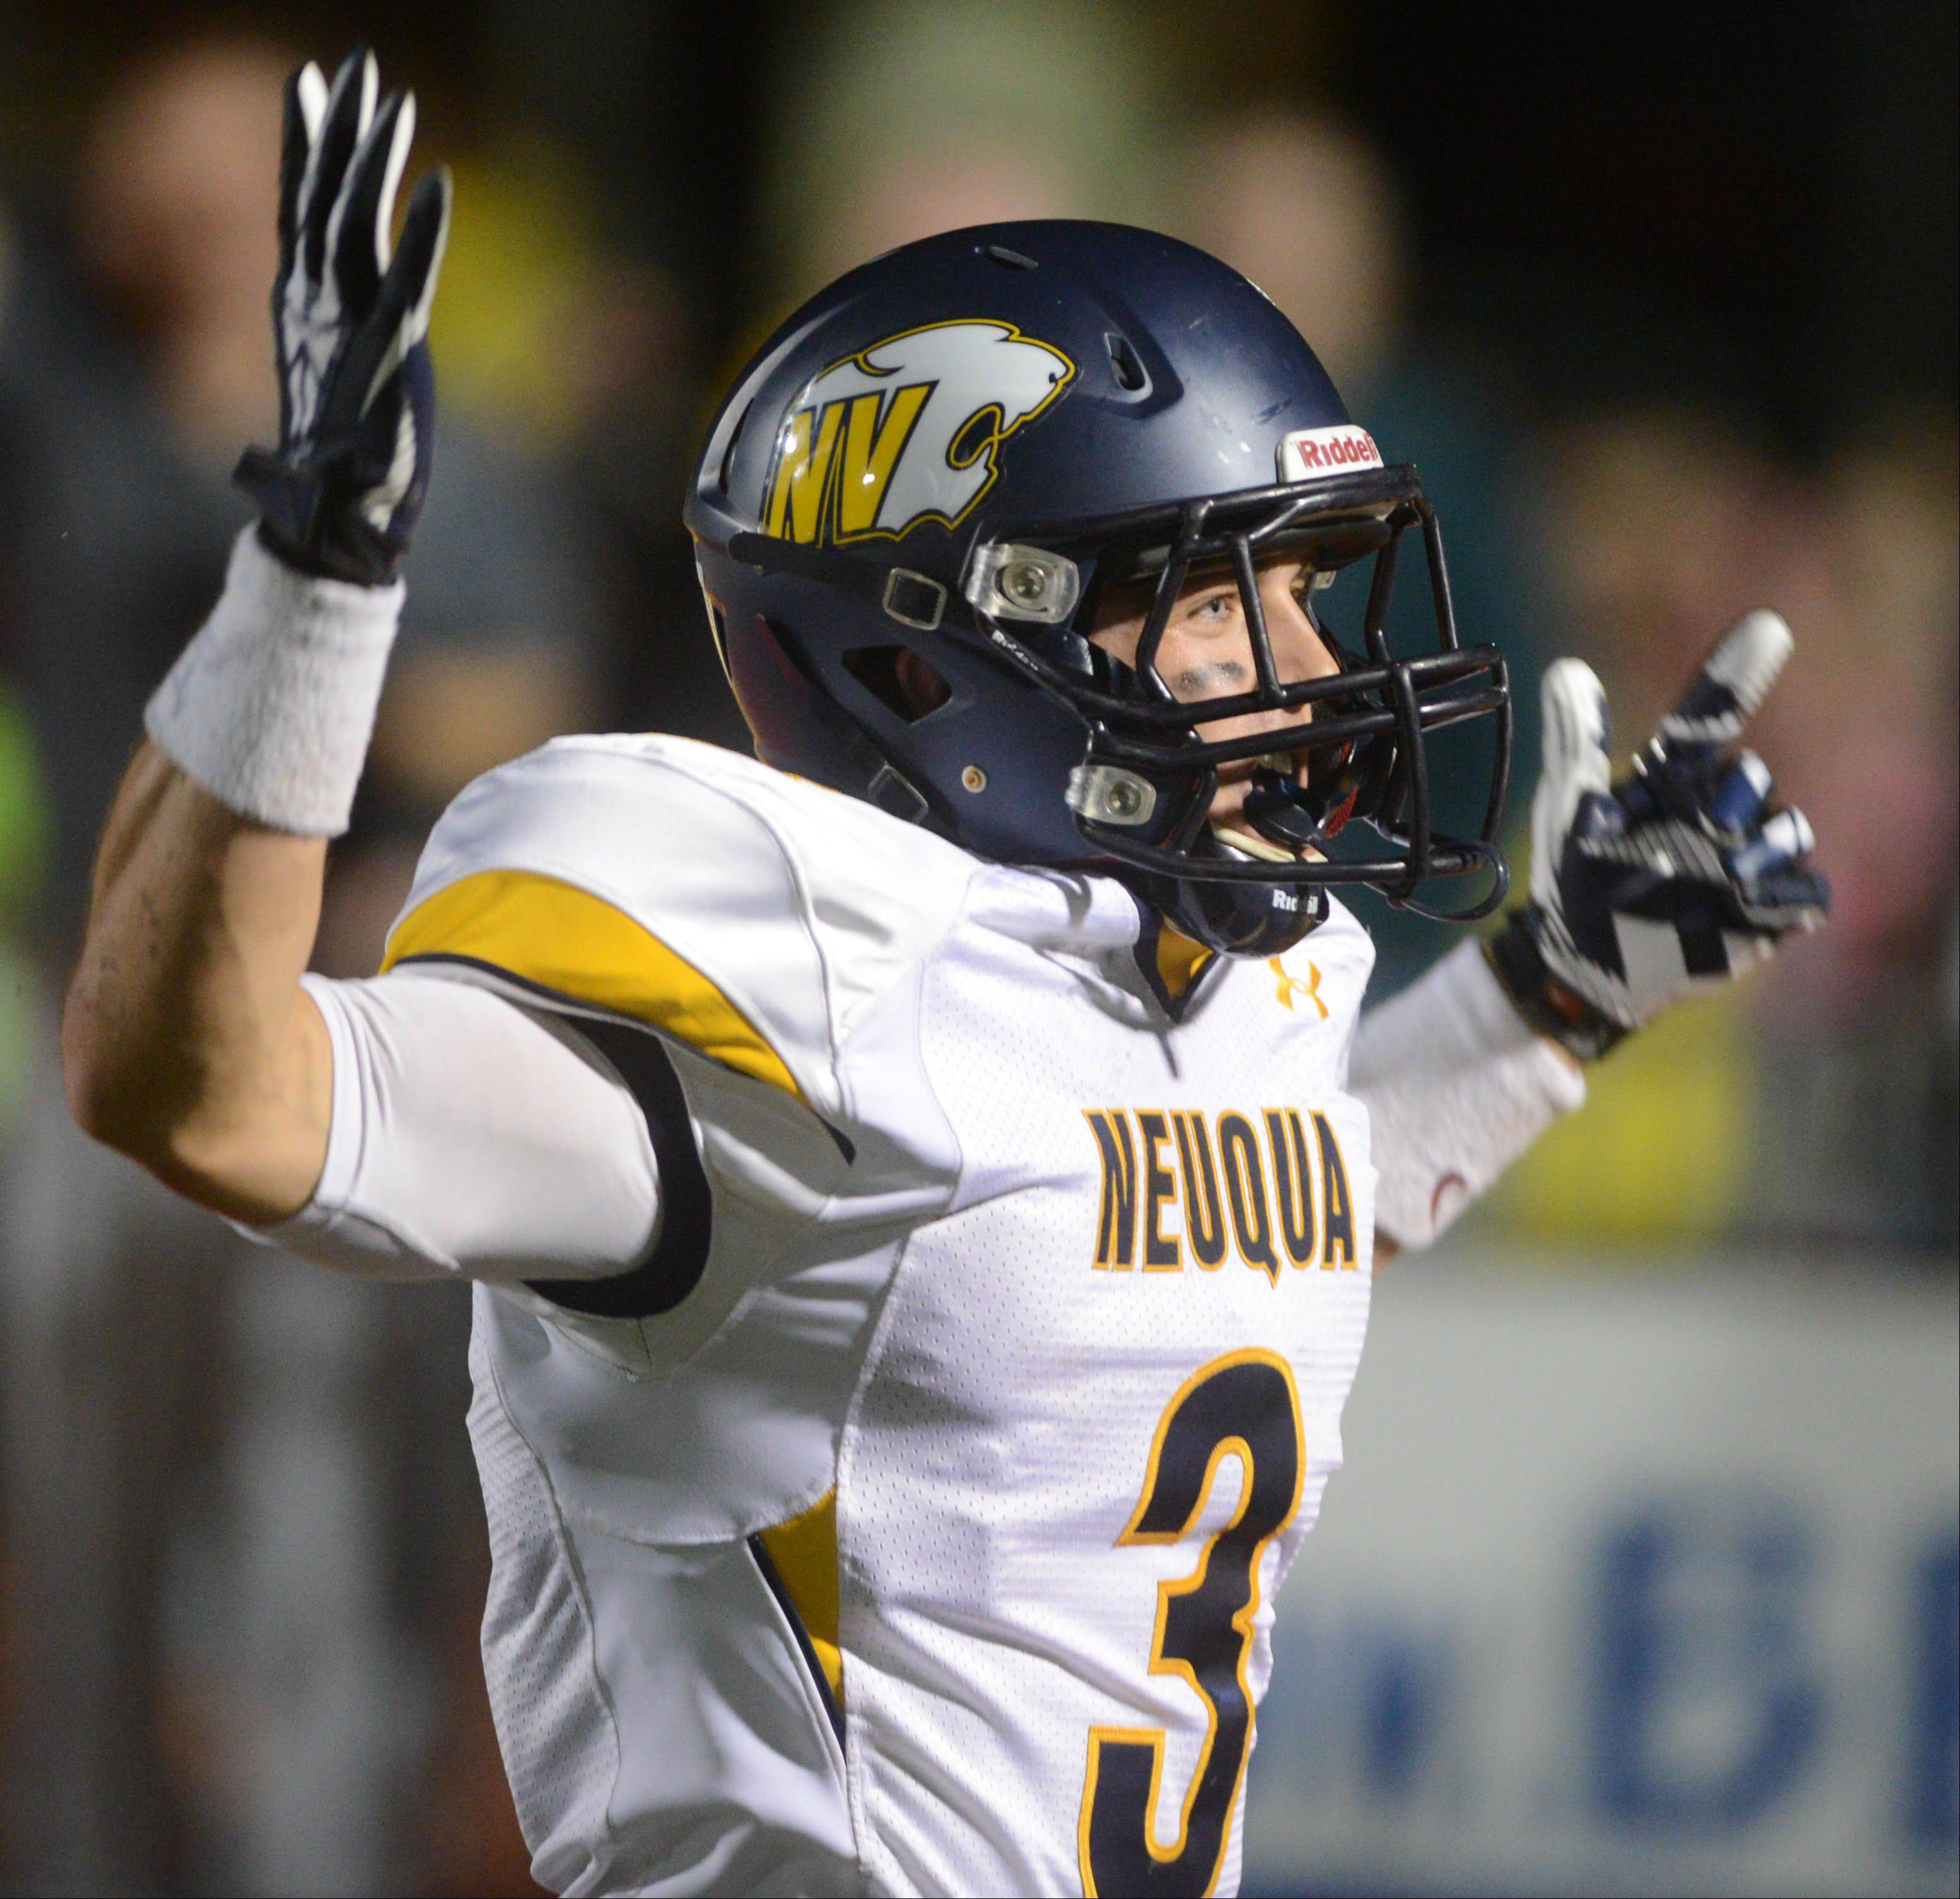 Mikey Dudek of Neuqua Valley celebrates a touchdown.